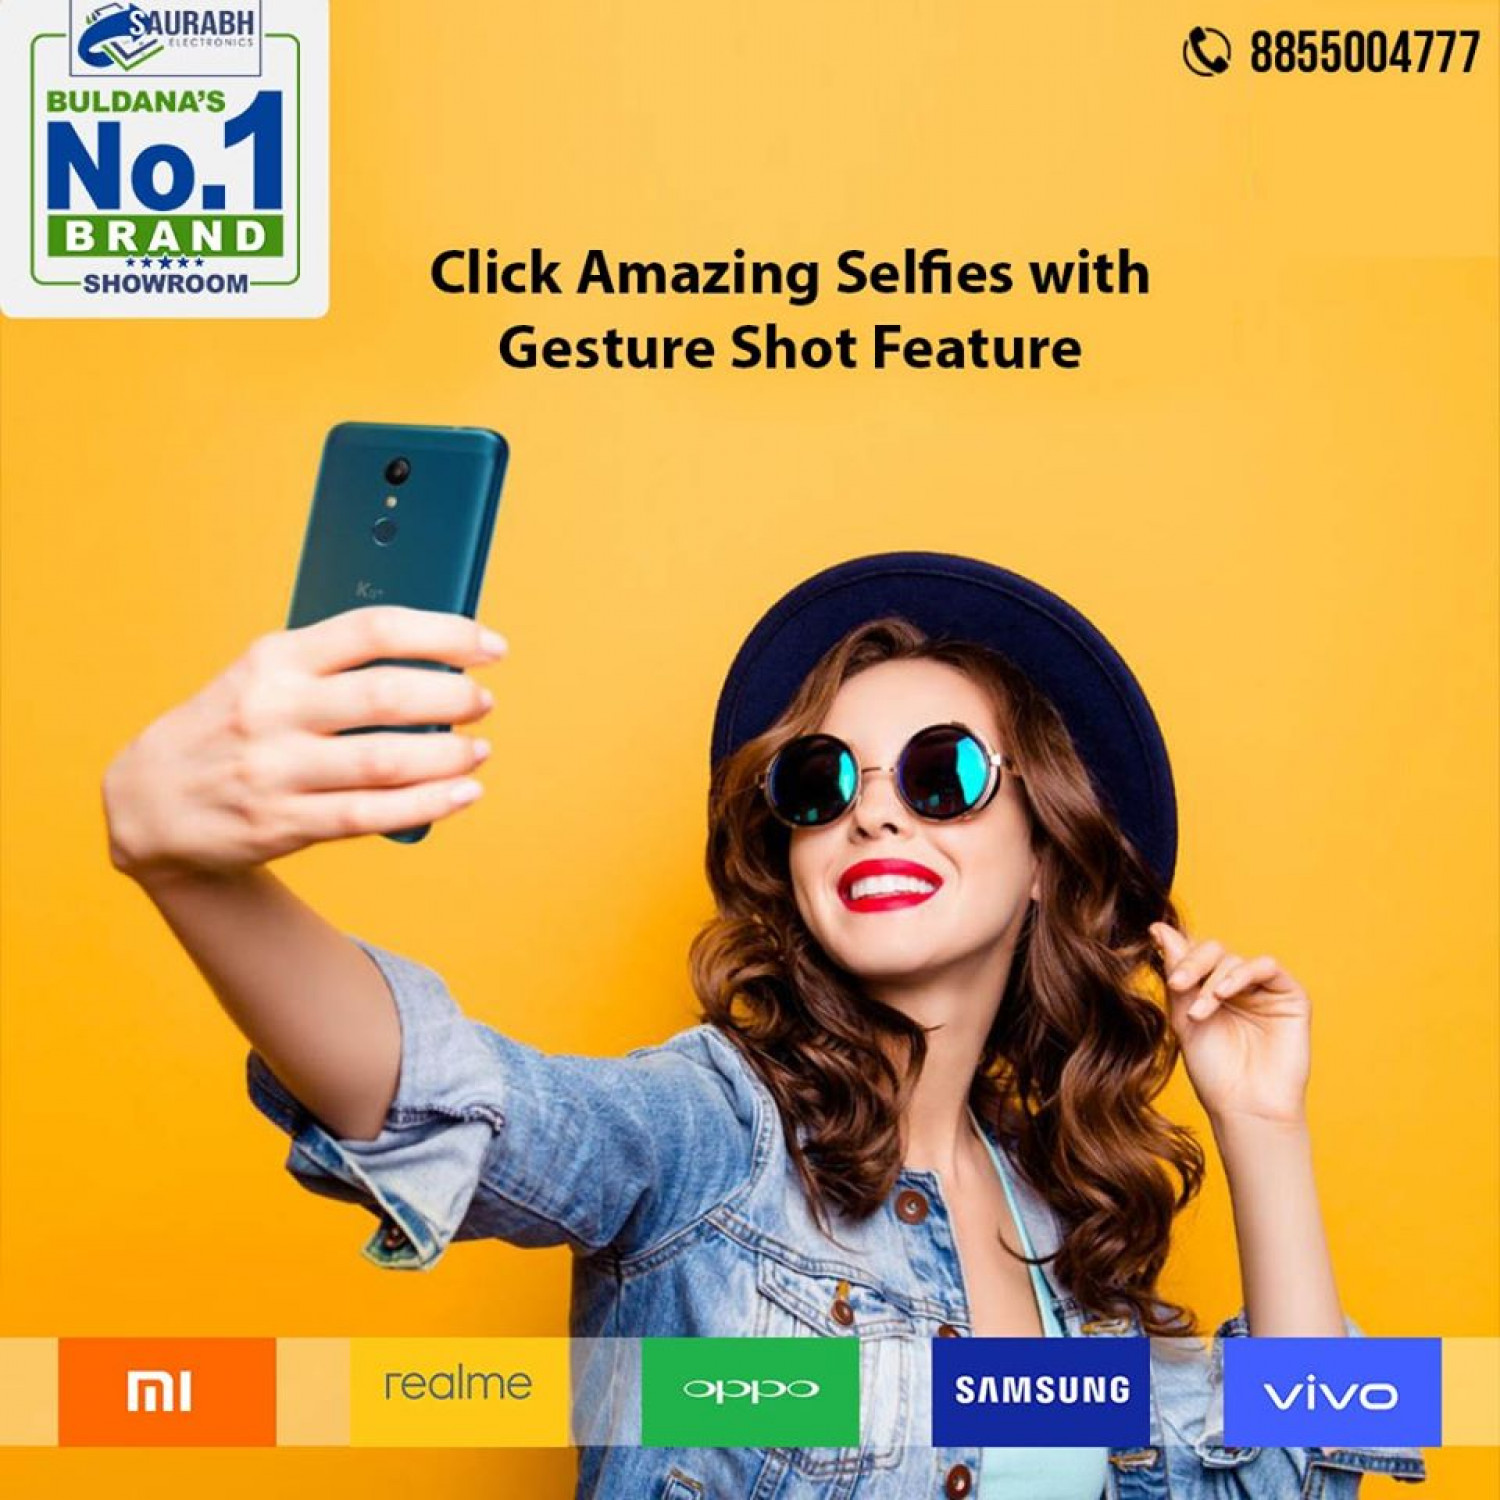 Saurabh Electronics | Best Mobile Store in Buldhana Infographic